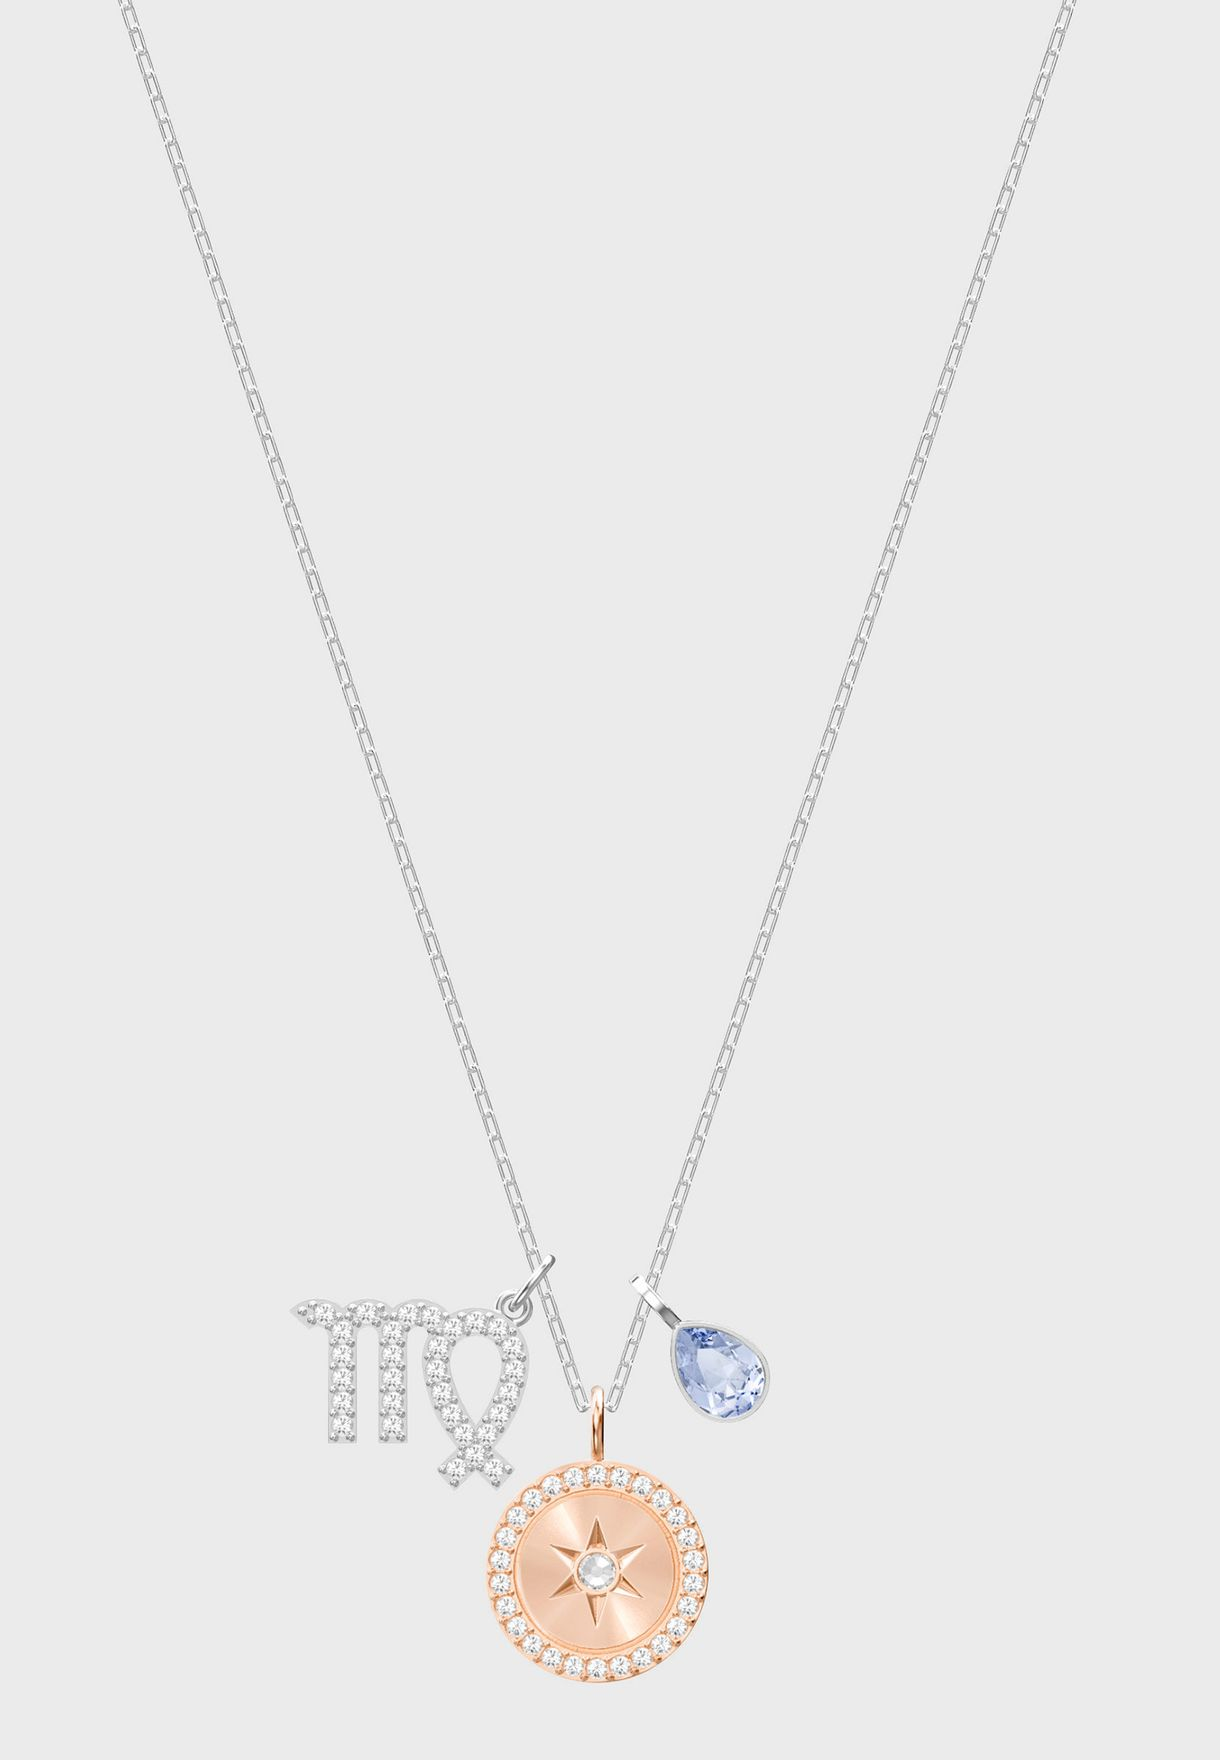 Zodiac Pendant, Virgo, Violet Necklace